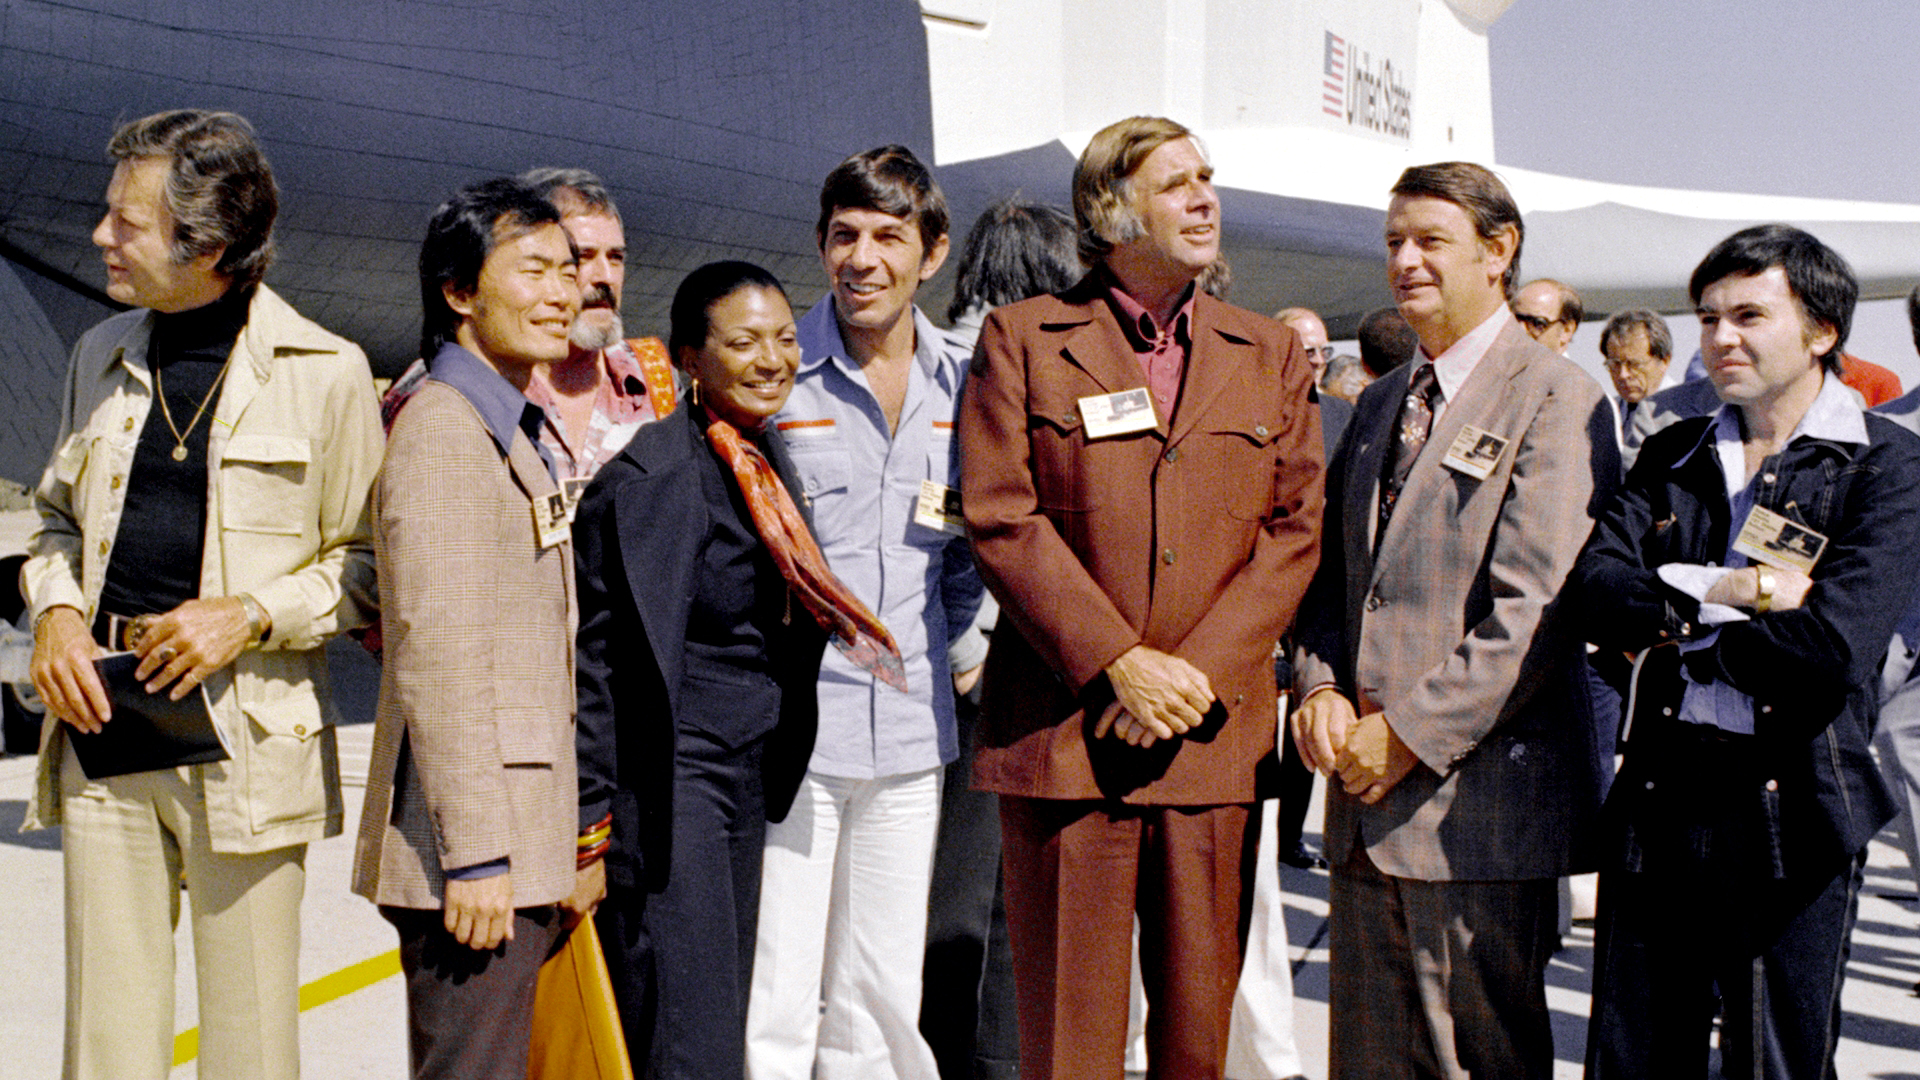 Star Trek Movie Cast 1979 of The Cast of Star Trek